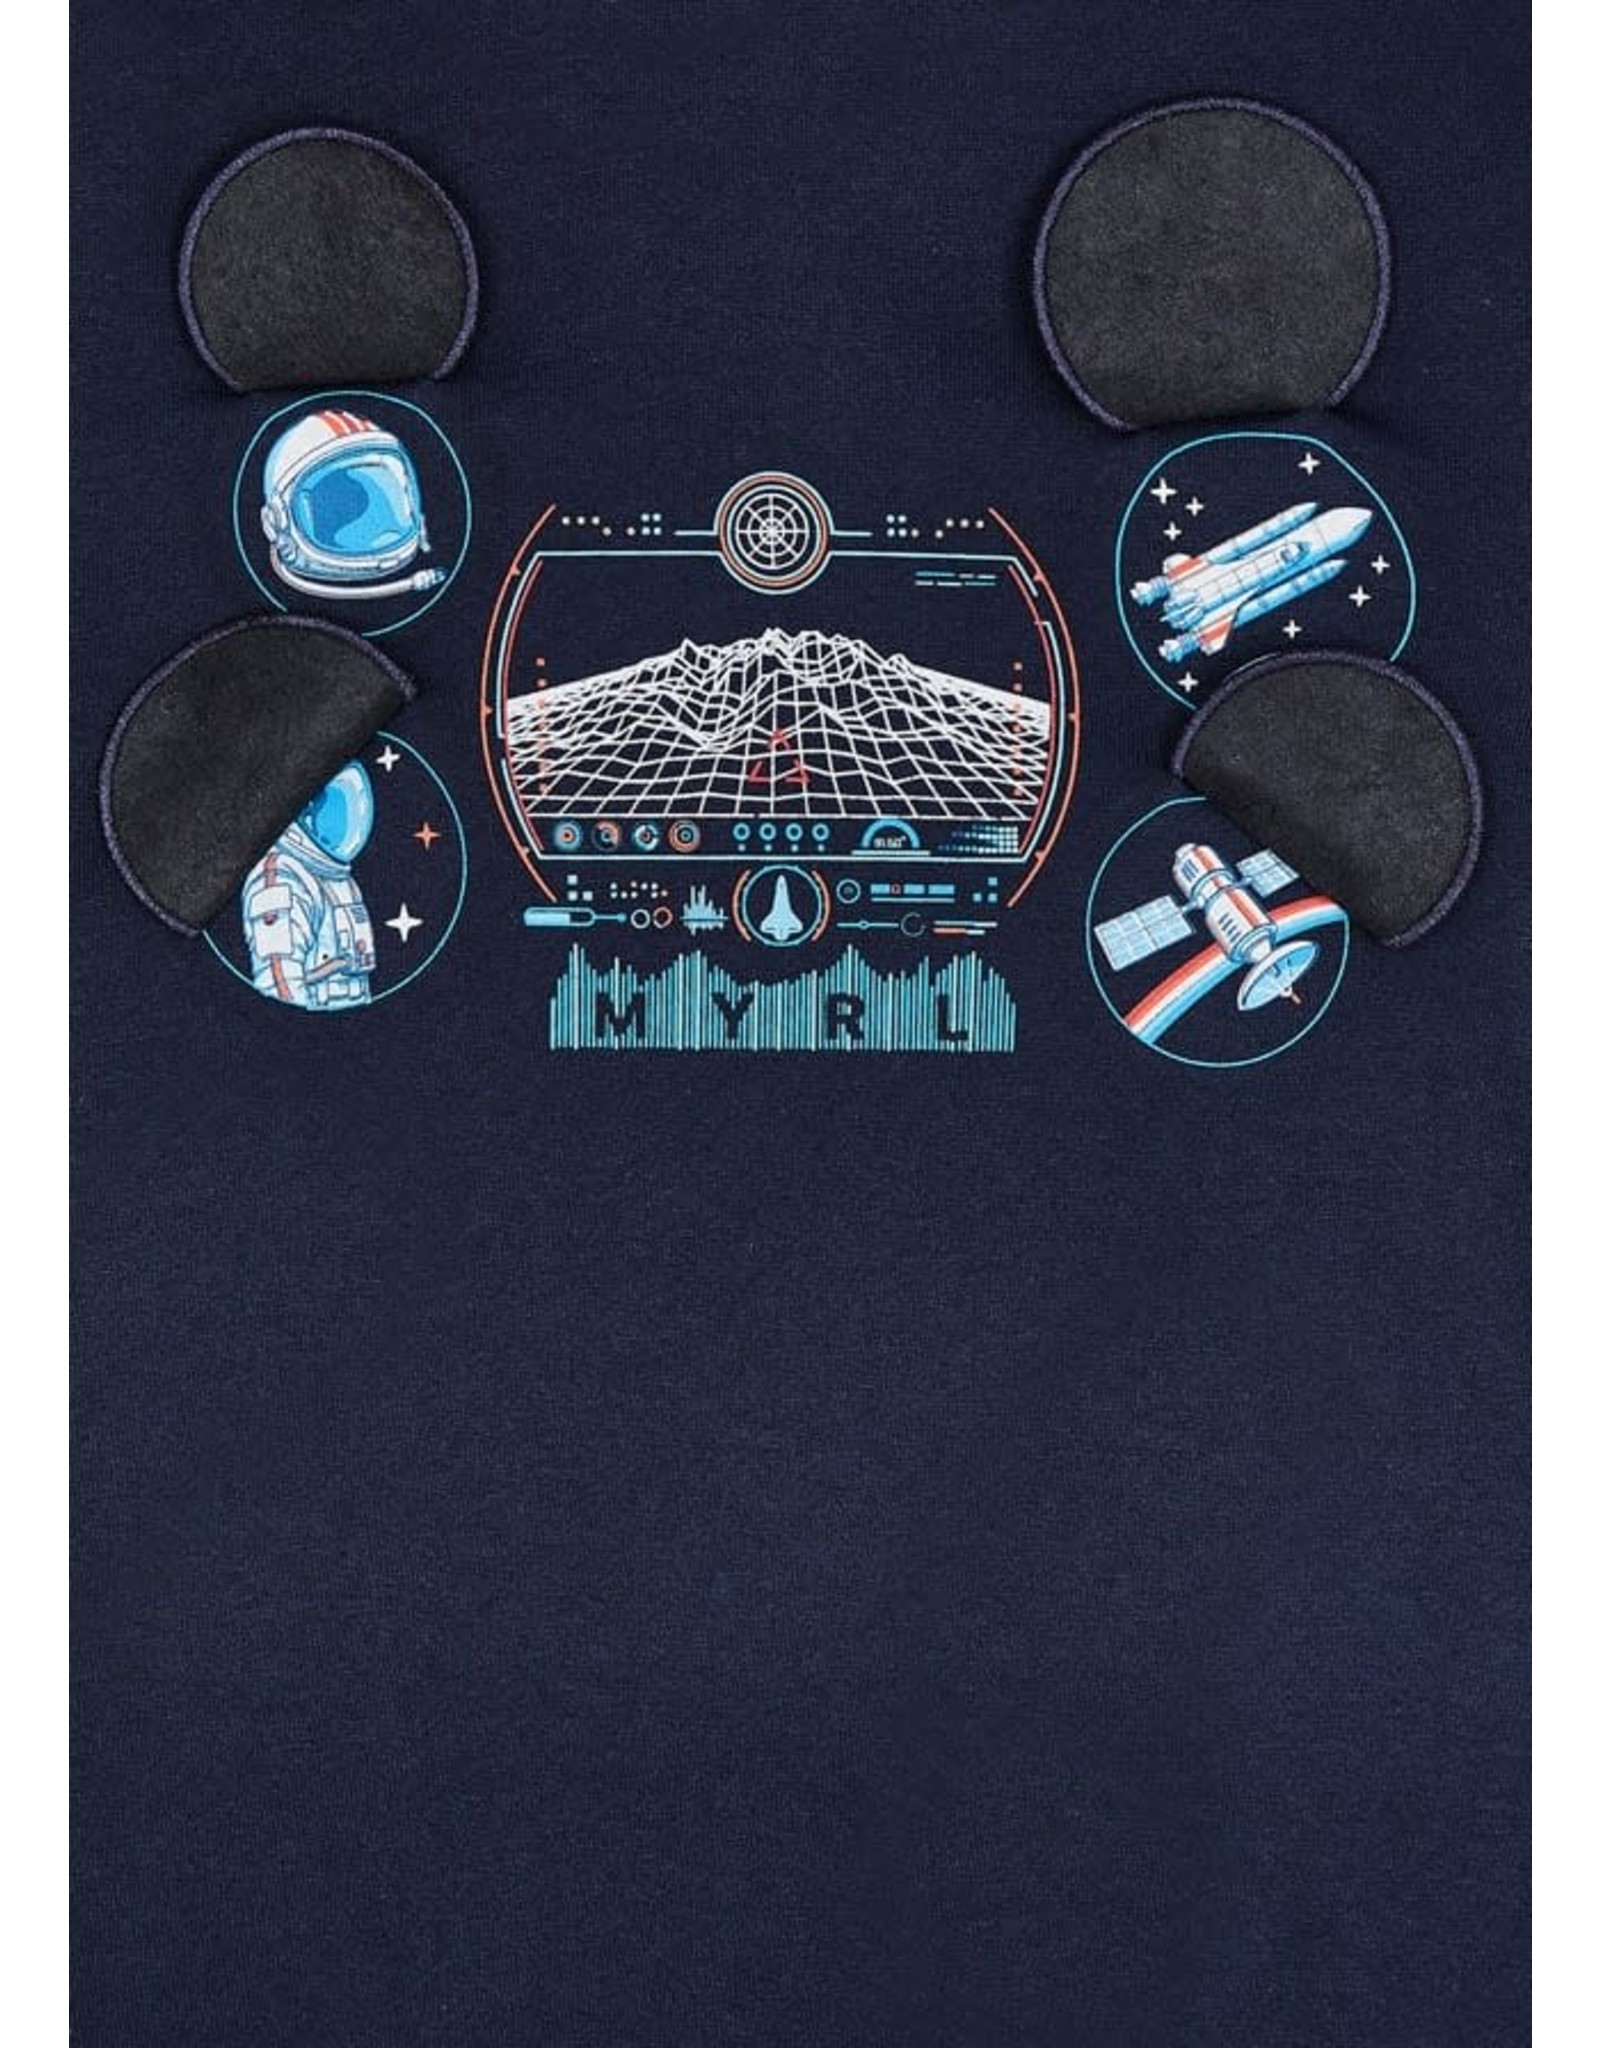 Mayoral Astronaut Patch T-Shirt